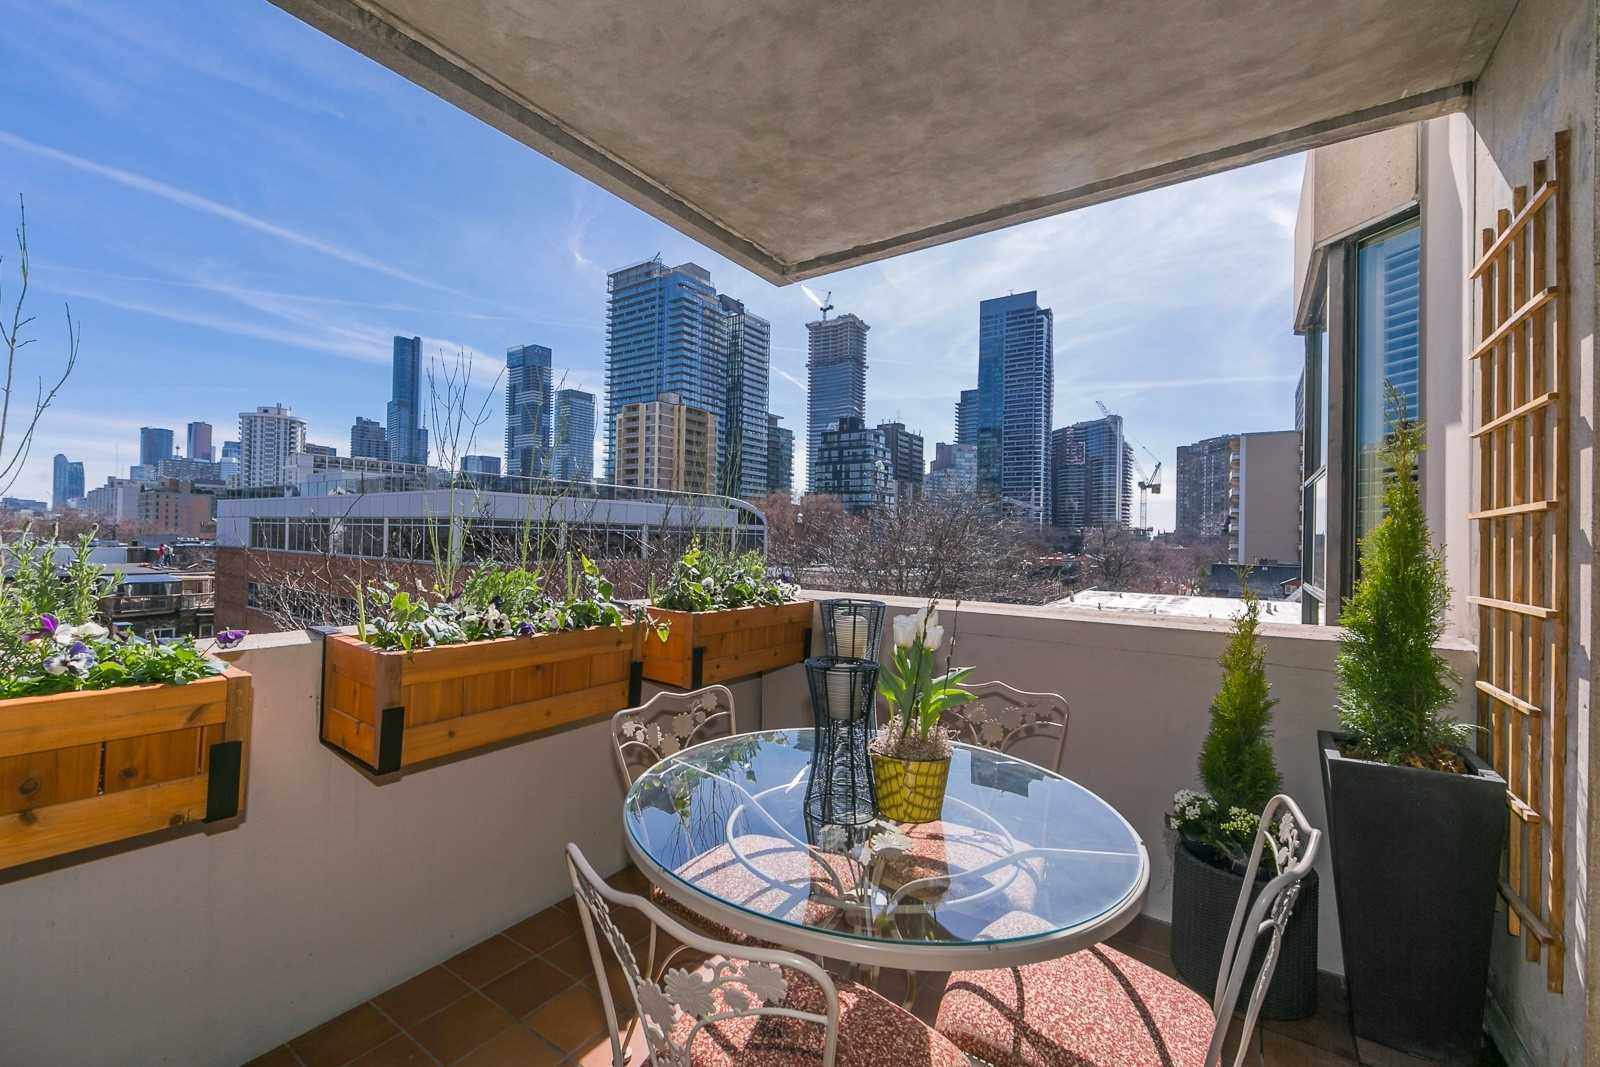 Stylishly Upgraded & Thoroughly Reno'd, Split Plan 2 Bdrm Corner Suite. Just Under 1300S.F With Oversized, South Facing Balc. Featuring Sunny, Tree-Top, Urban Views. Cook's Kit, Granite, Upgr. Cabinetry & Appliances. Equal Sized Bdrms & Luxury Ensuite Baths. 5-Star Amenities With Gym, Pool & Rooftop Terrace . Rare Opportunity Not To Be Missed! Steps To Yonge & Bloor, Yorkville, Village Shopping, Manulife Centre, Goodlife, Theatres, Loblaws, Restos & More.